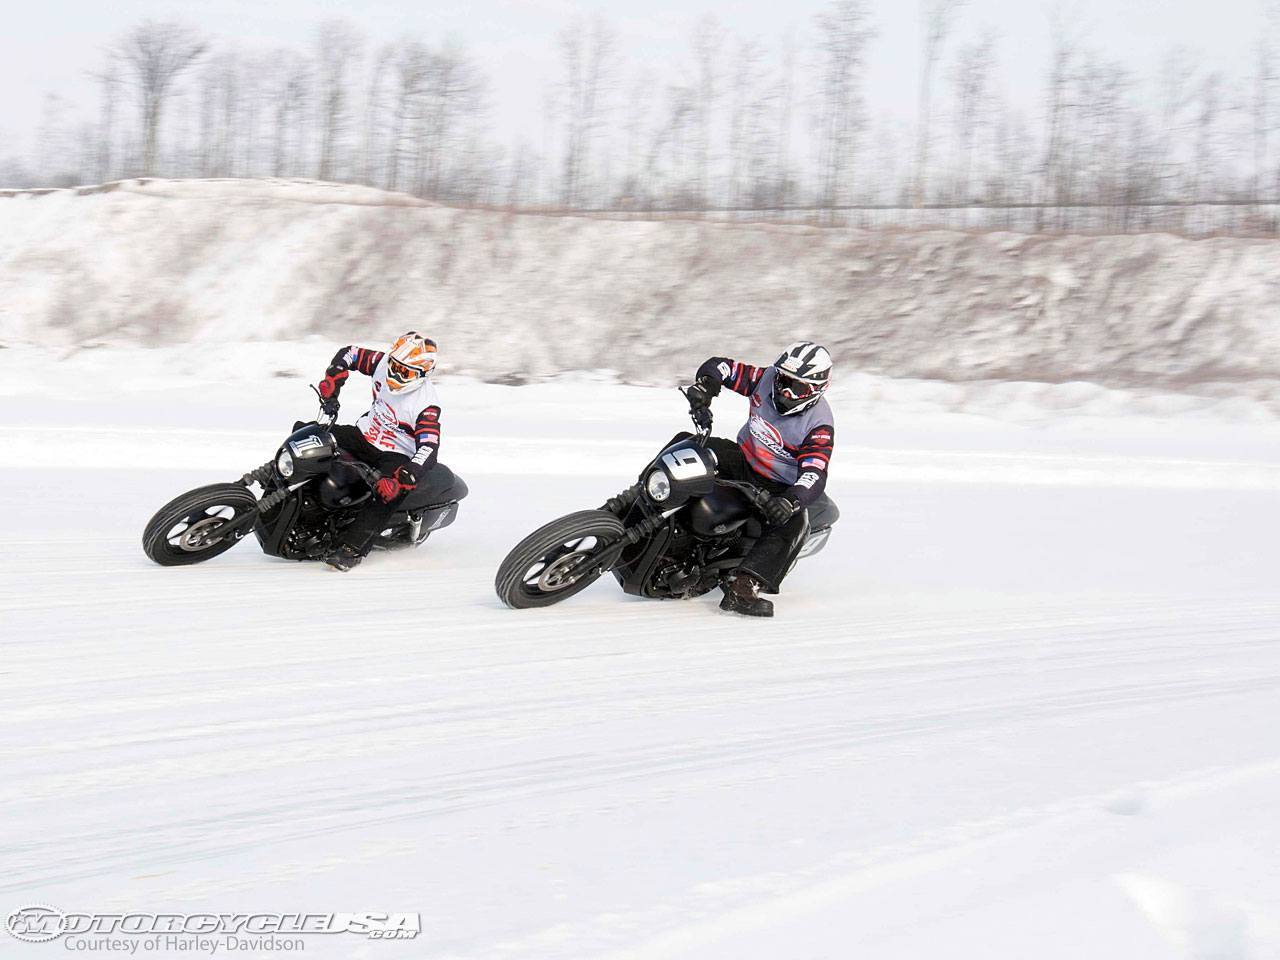 Photo of Harley® Street 750 Debuts Ice Races at X Games